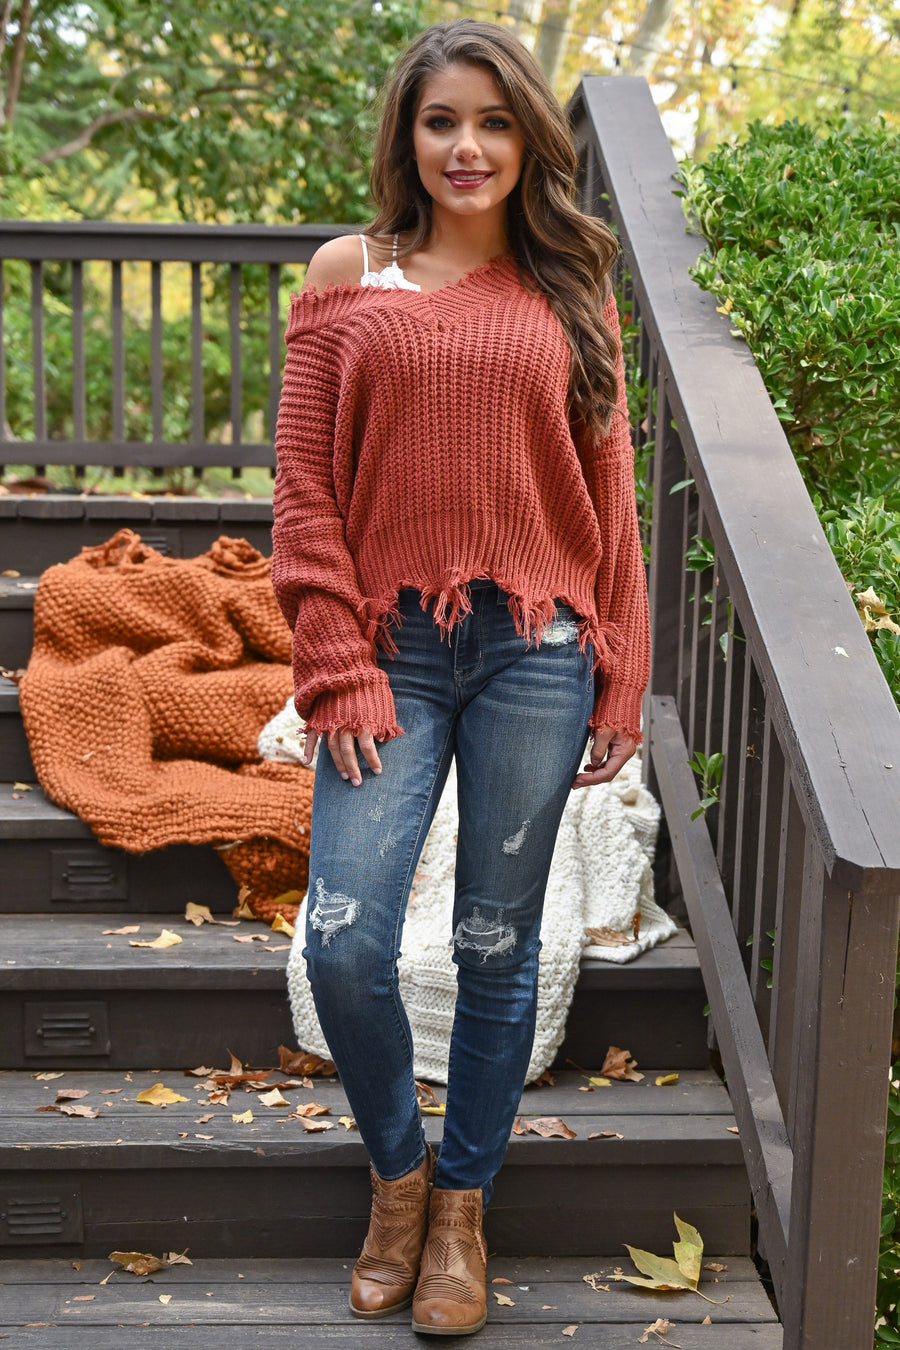 Up For Anything Sweater - Brick knit women's v-neck sweater with frayed edges, Closet Candy Boutique 1